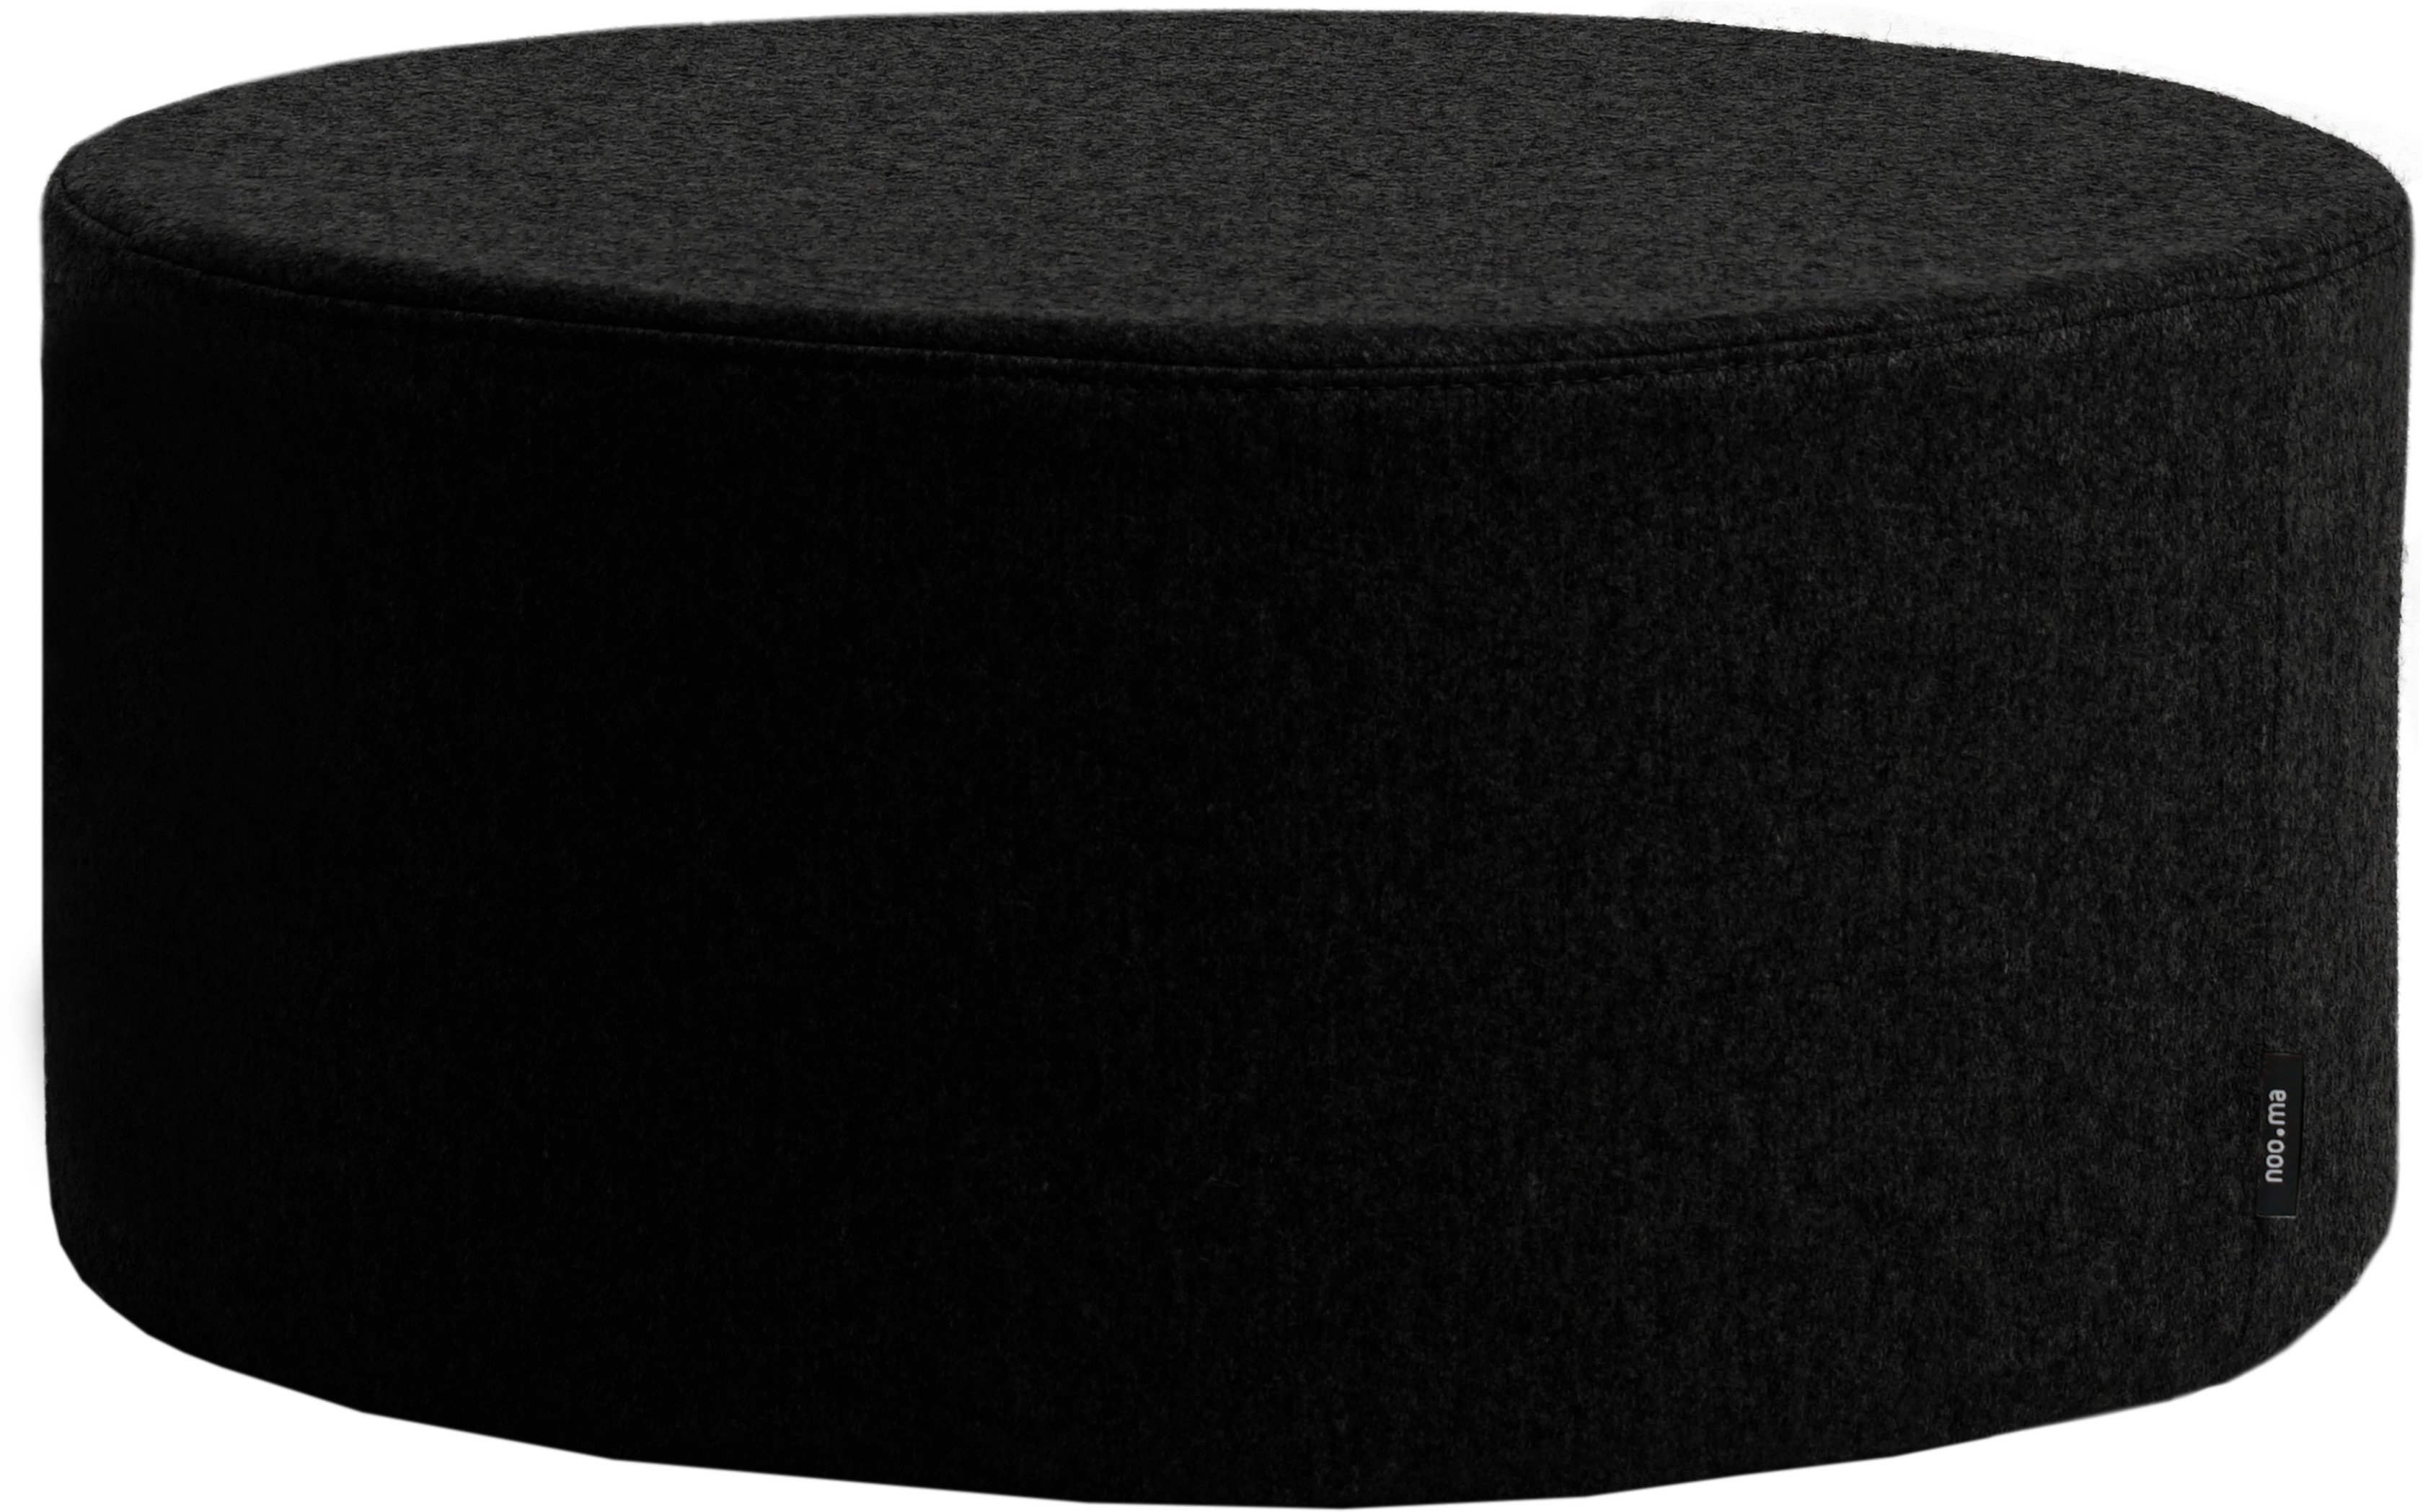 Folk Pouf Black Low, noo.ma